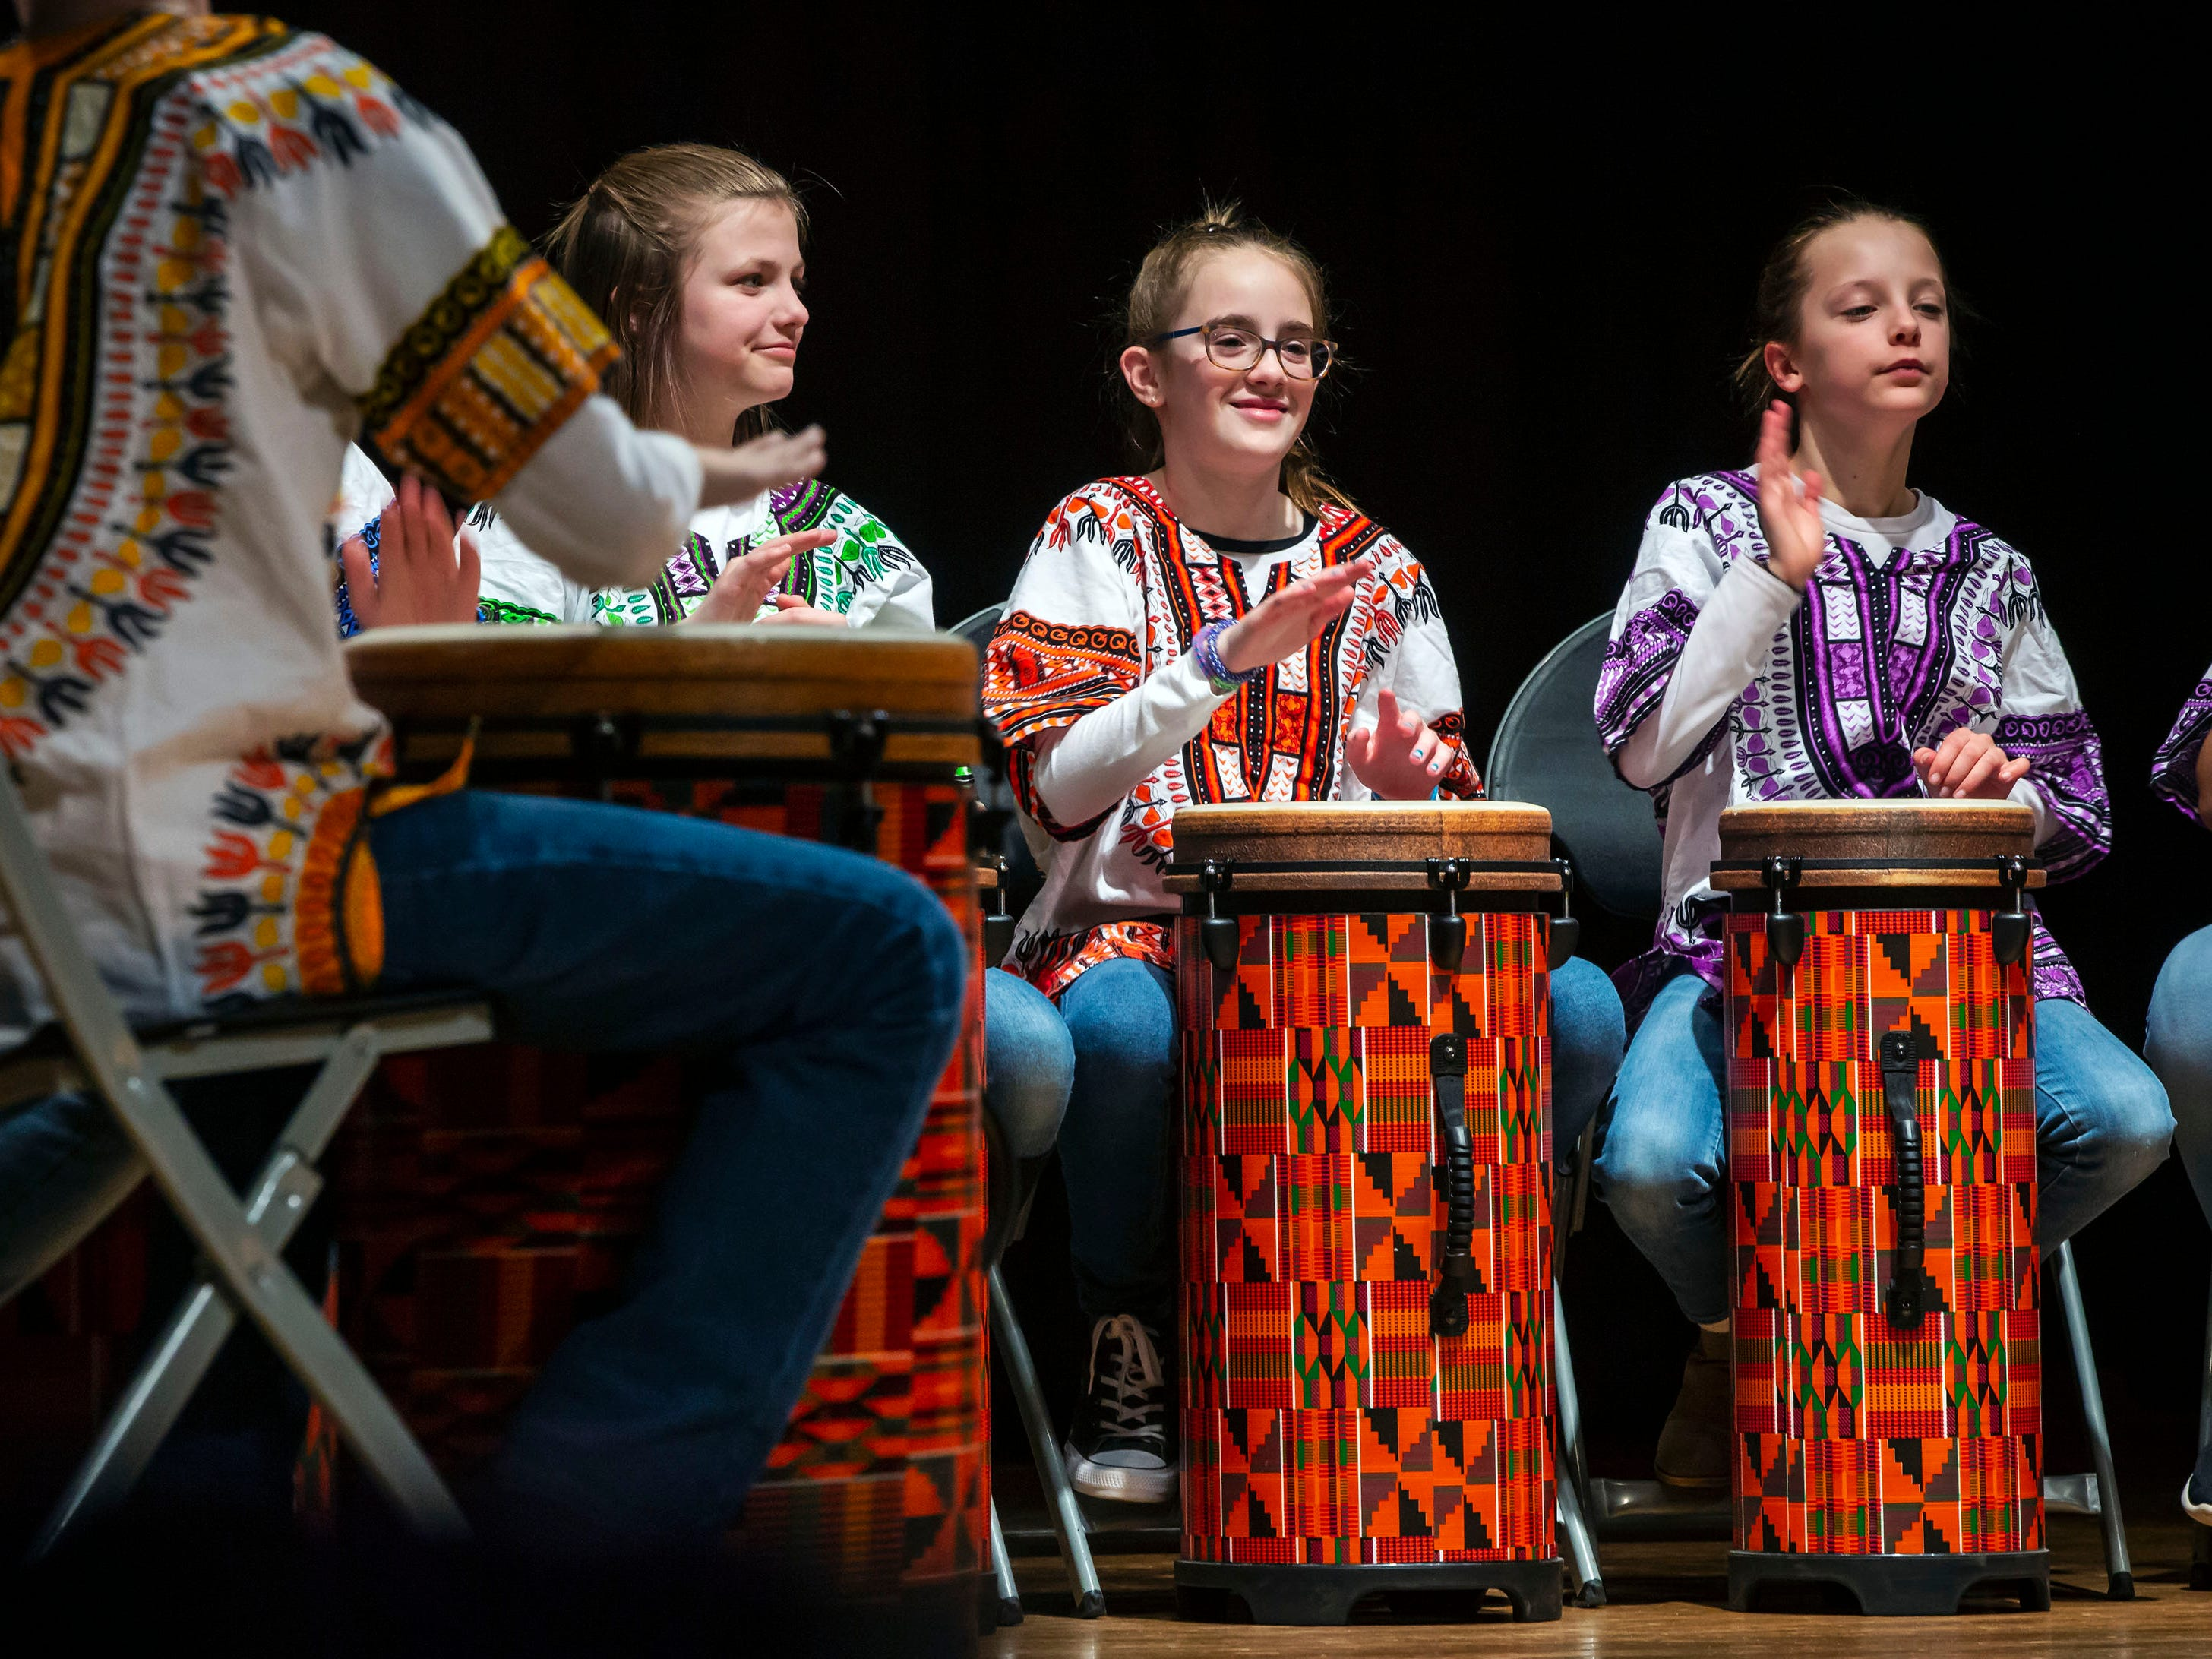 Northfield Elementary School's Drumming Ensemble perform at the African-American Cultural Celebration held at Patterson Park Community Center.